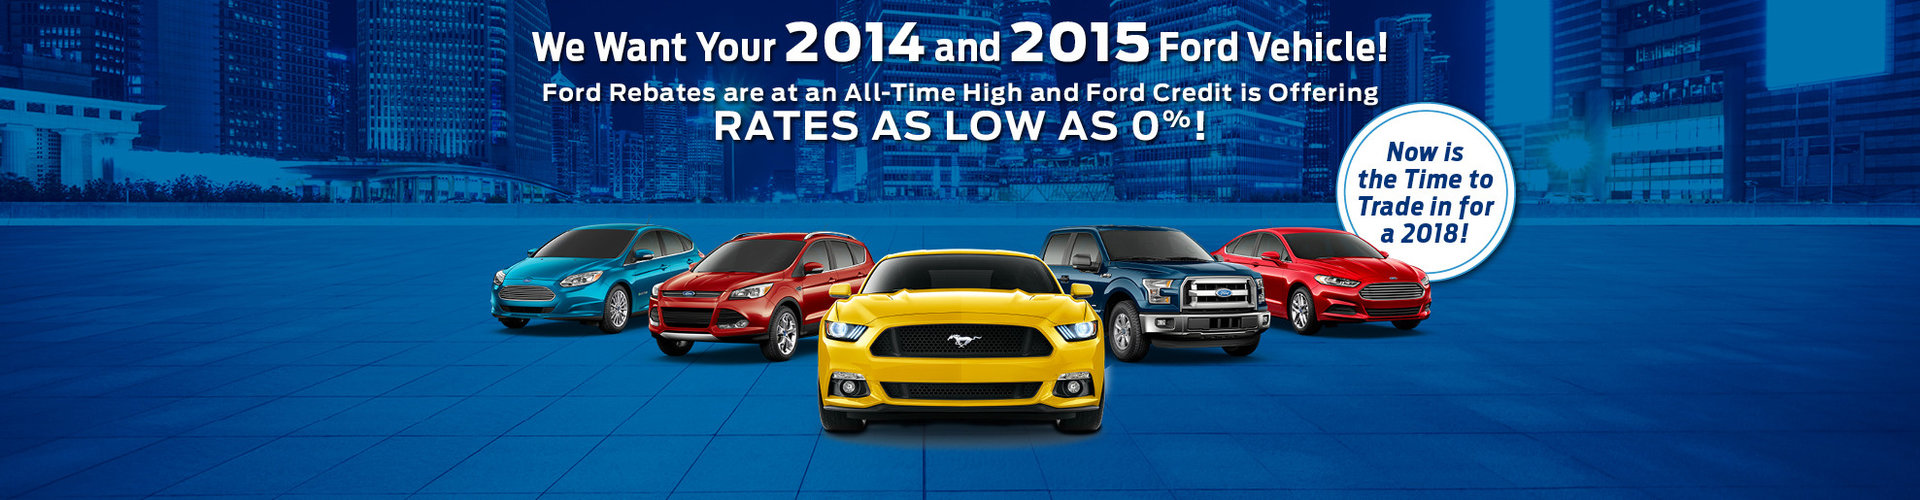 Trade in your 2014 or 2015 Ford Vehicle - trade in for a 2018